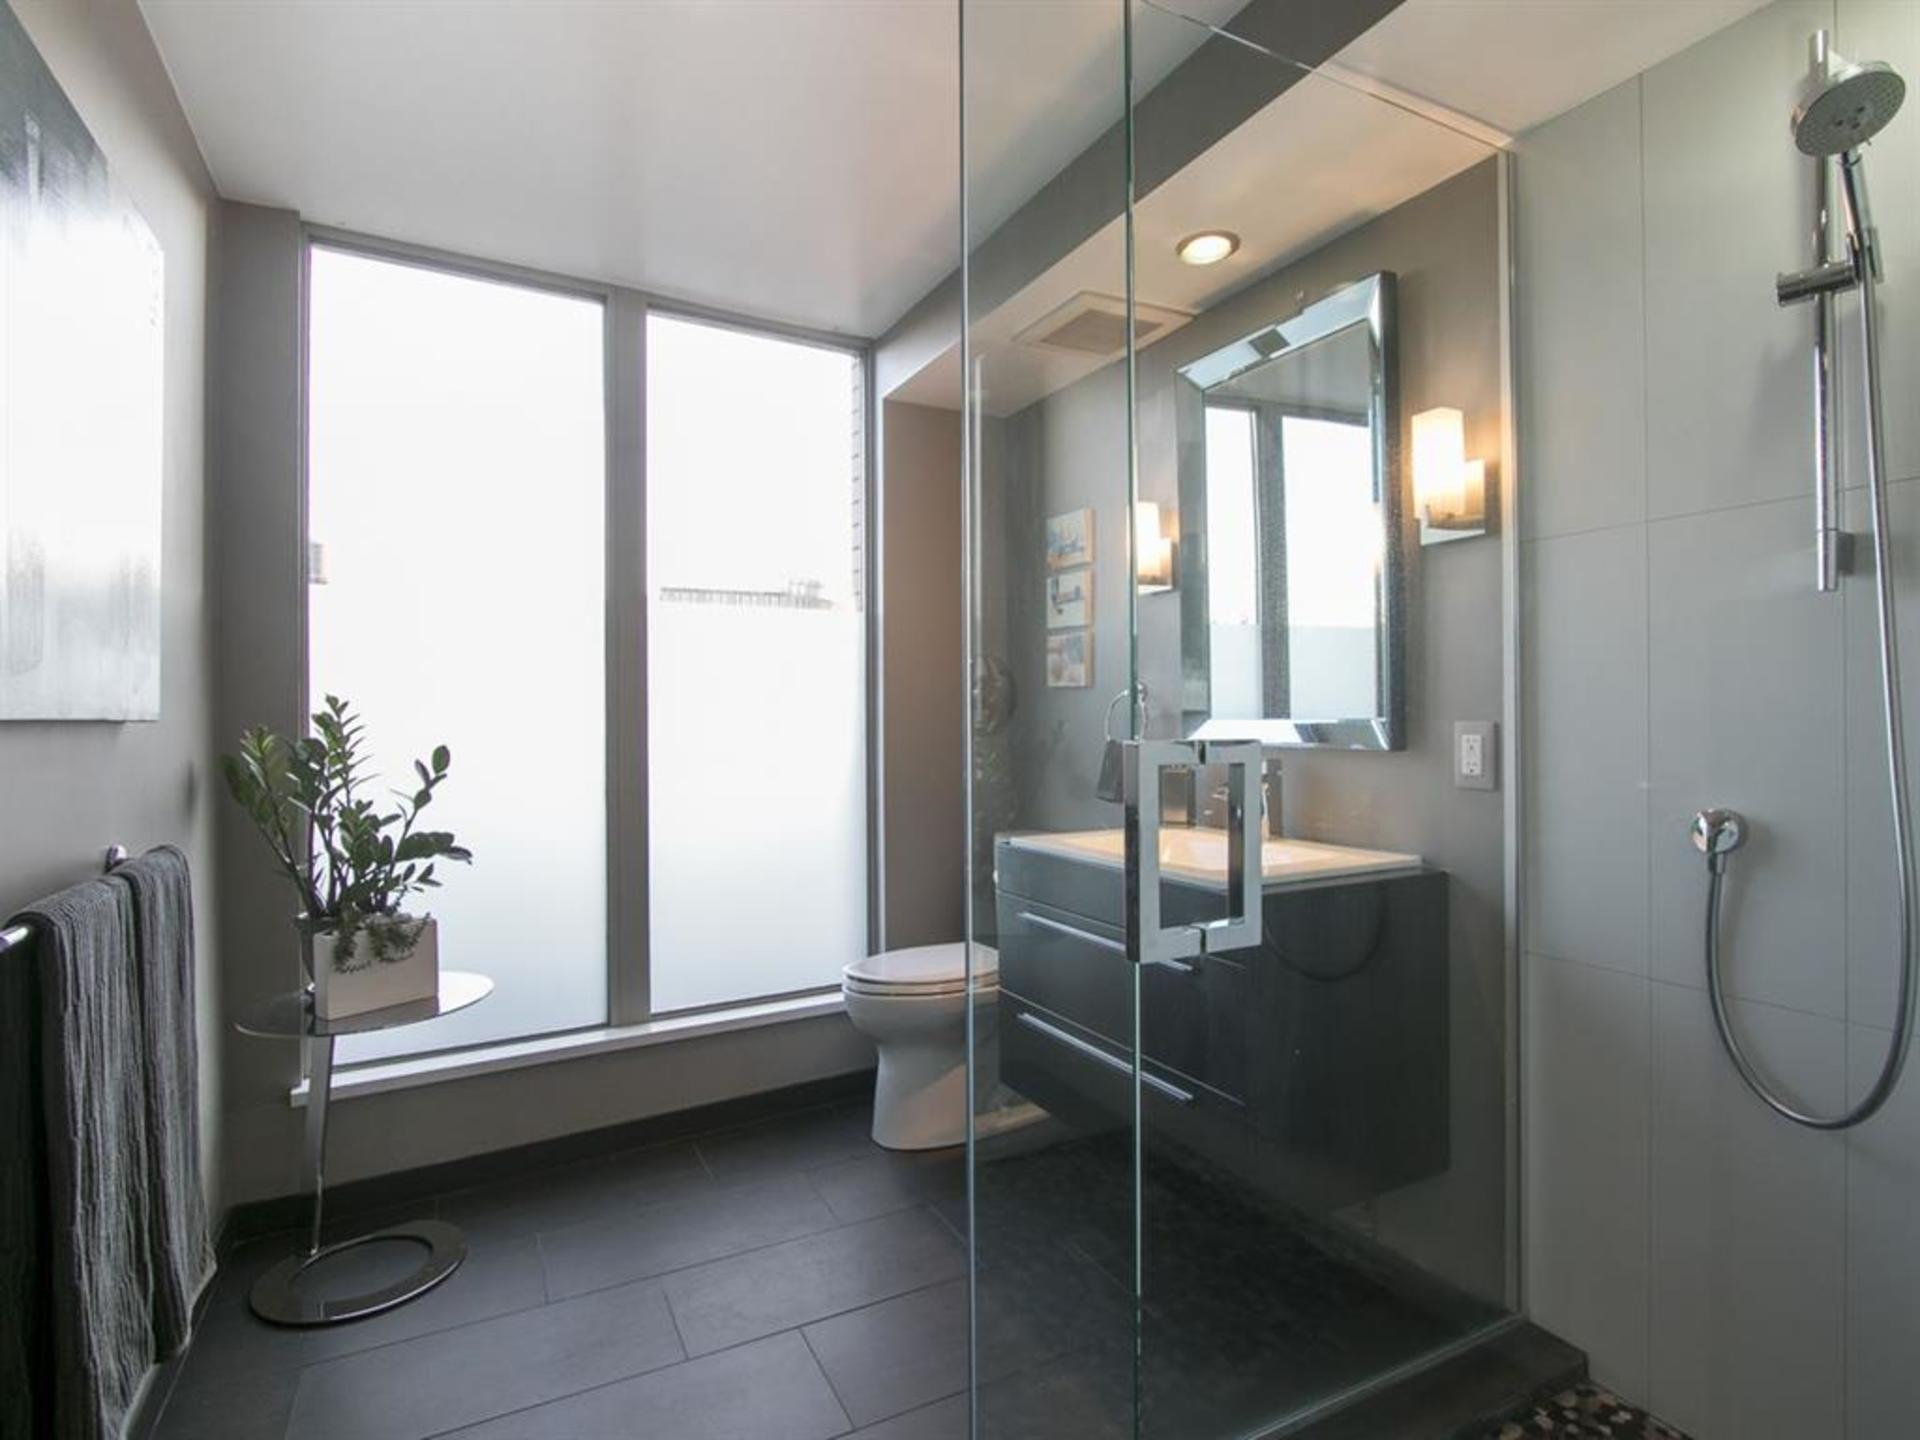 262039623-6 at 606 - 55 Alexander Street, Downtown VE, Vancouver East